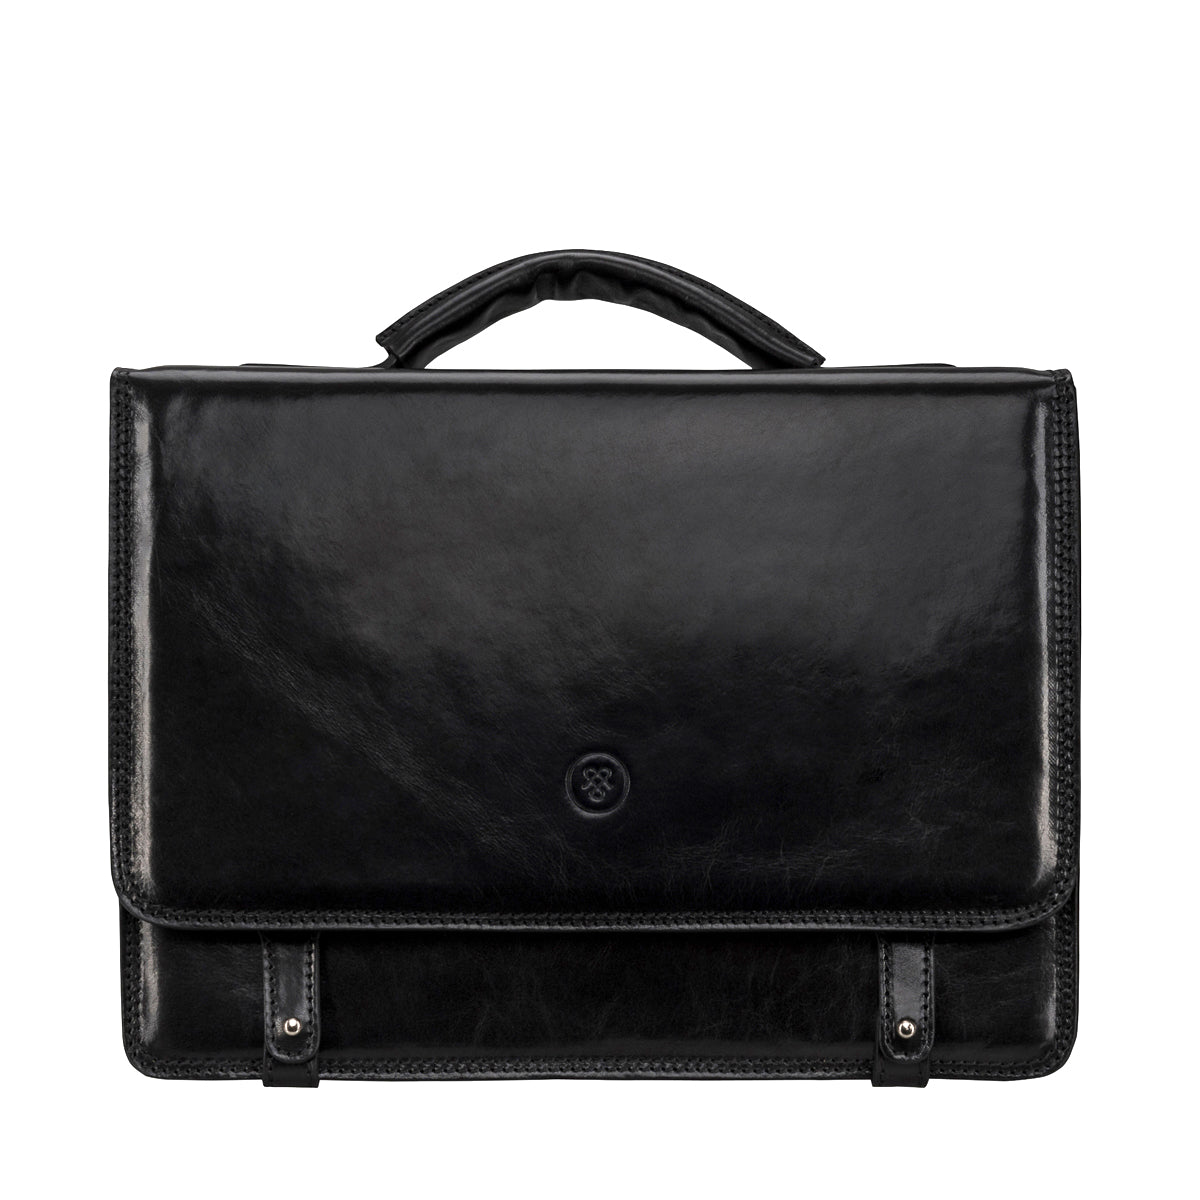 Image 1 of the 'Battista' Black Veg-Tanned Leather Satchel Briefcase